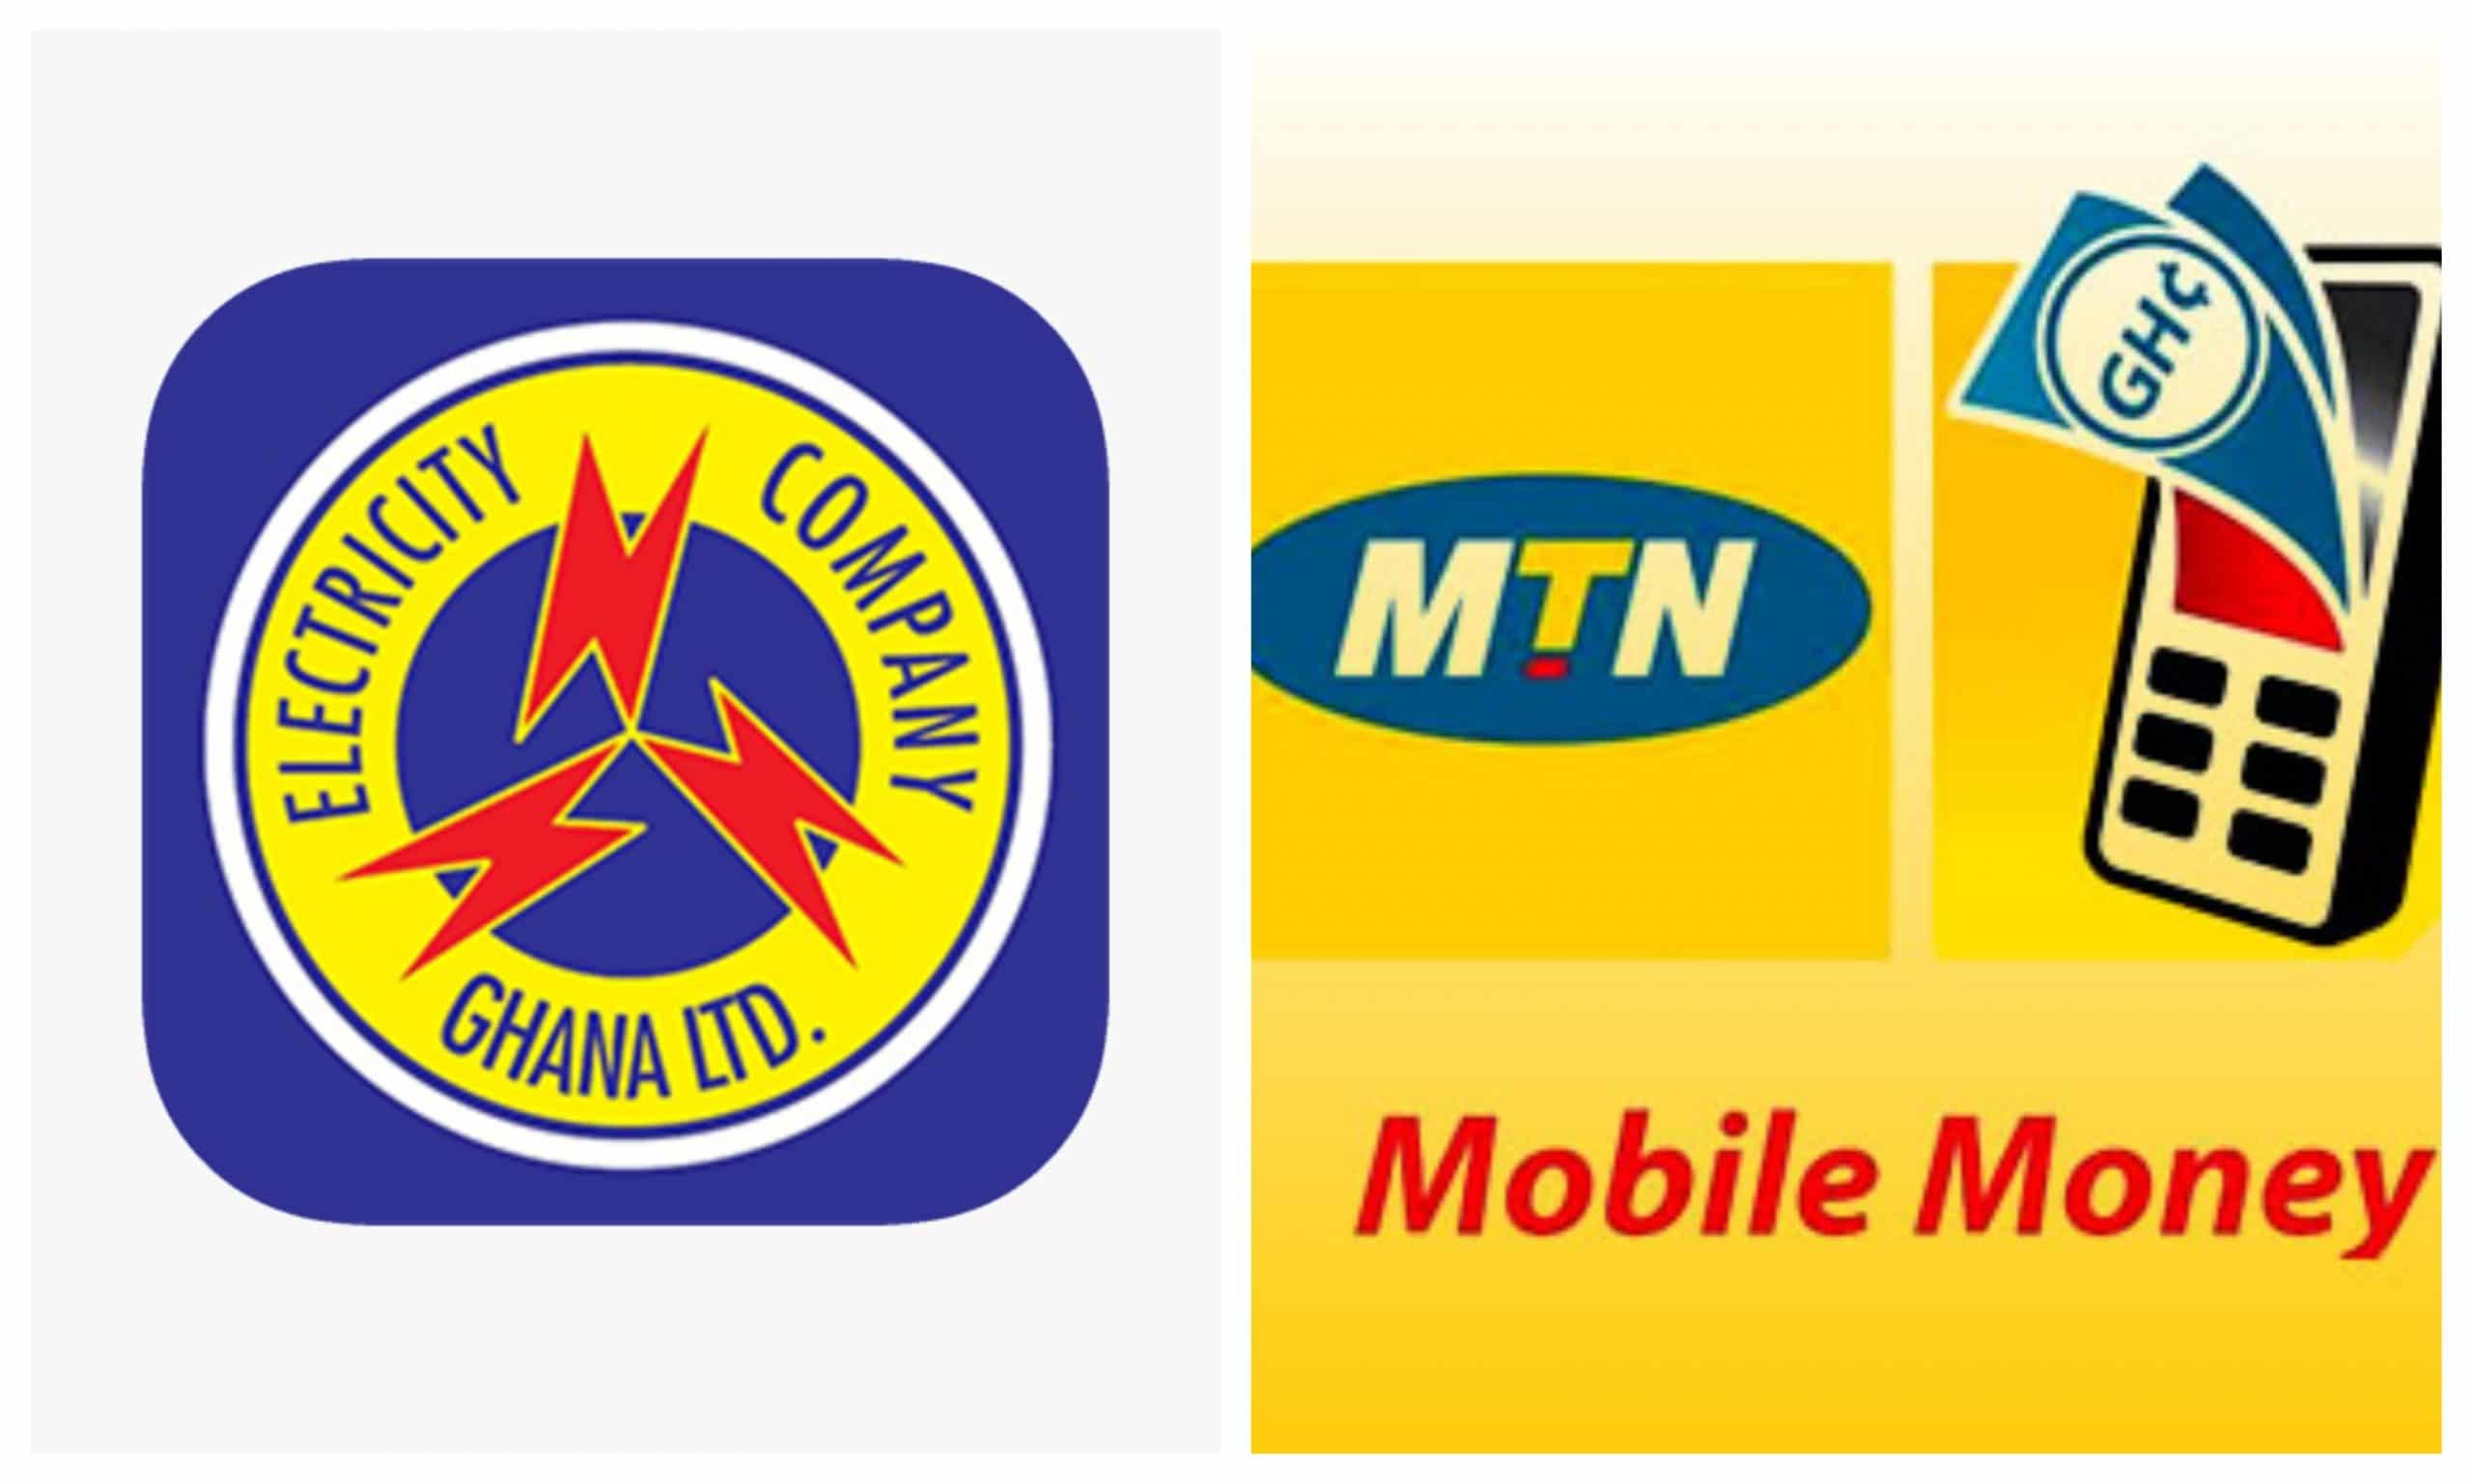 ecg prepaid mobile money